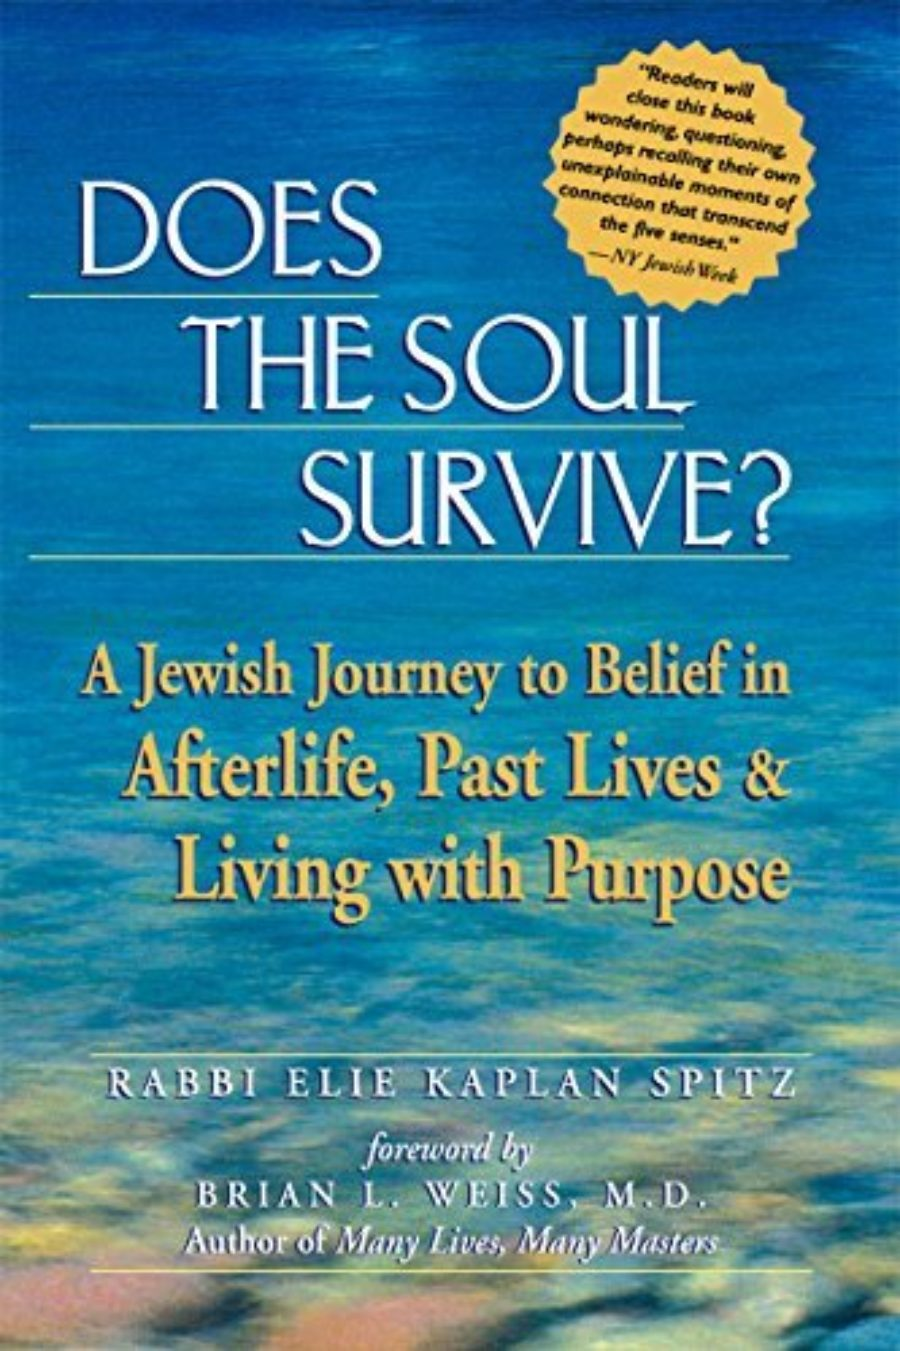 Cover of Does the Soul Survive?: A Jewish Journey to Belief in Afterlife, Past Lives & Living with Purpose